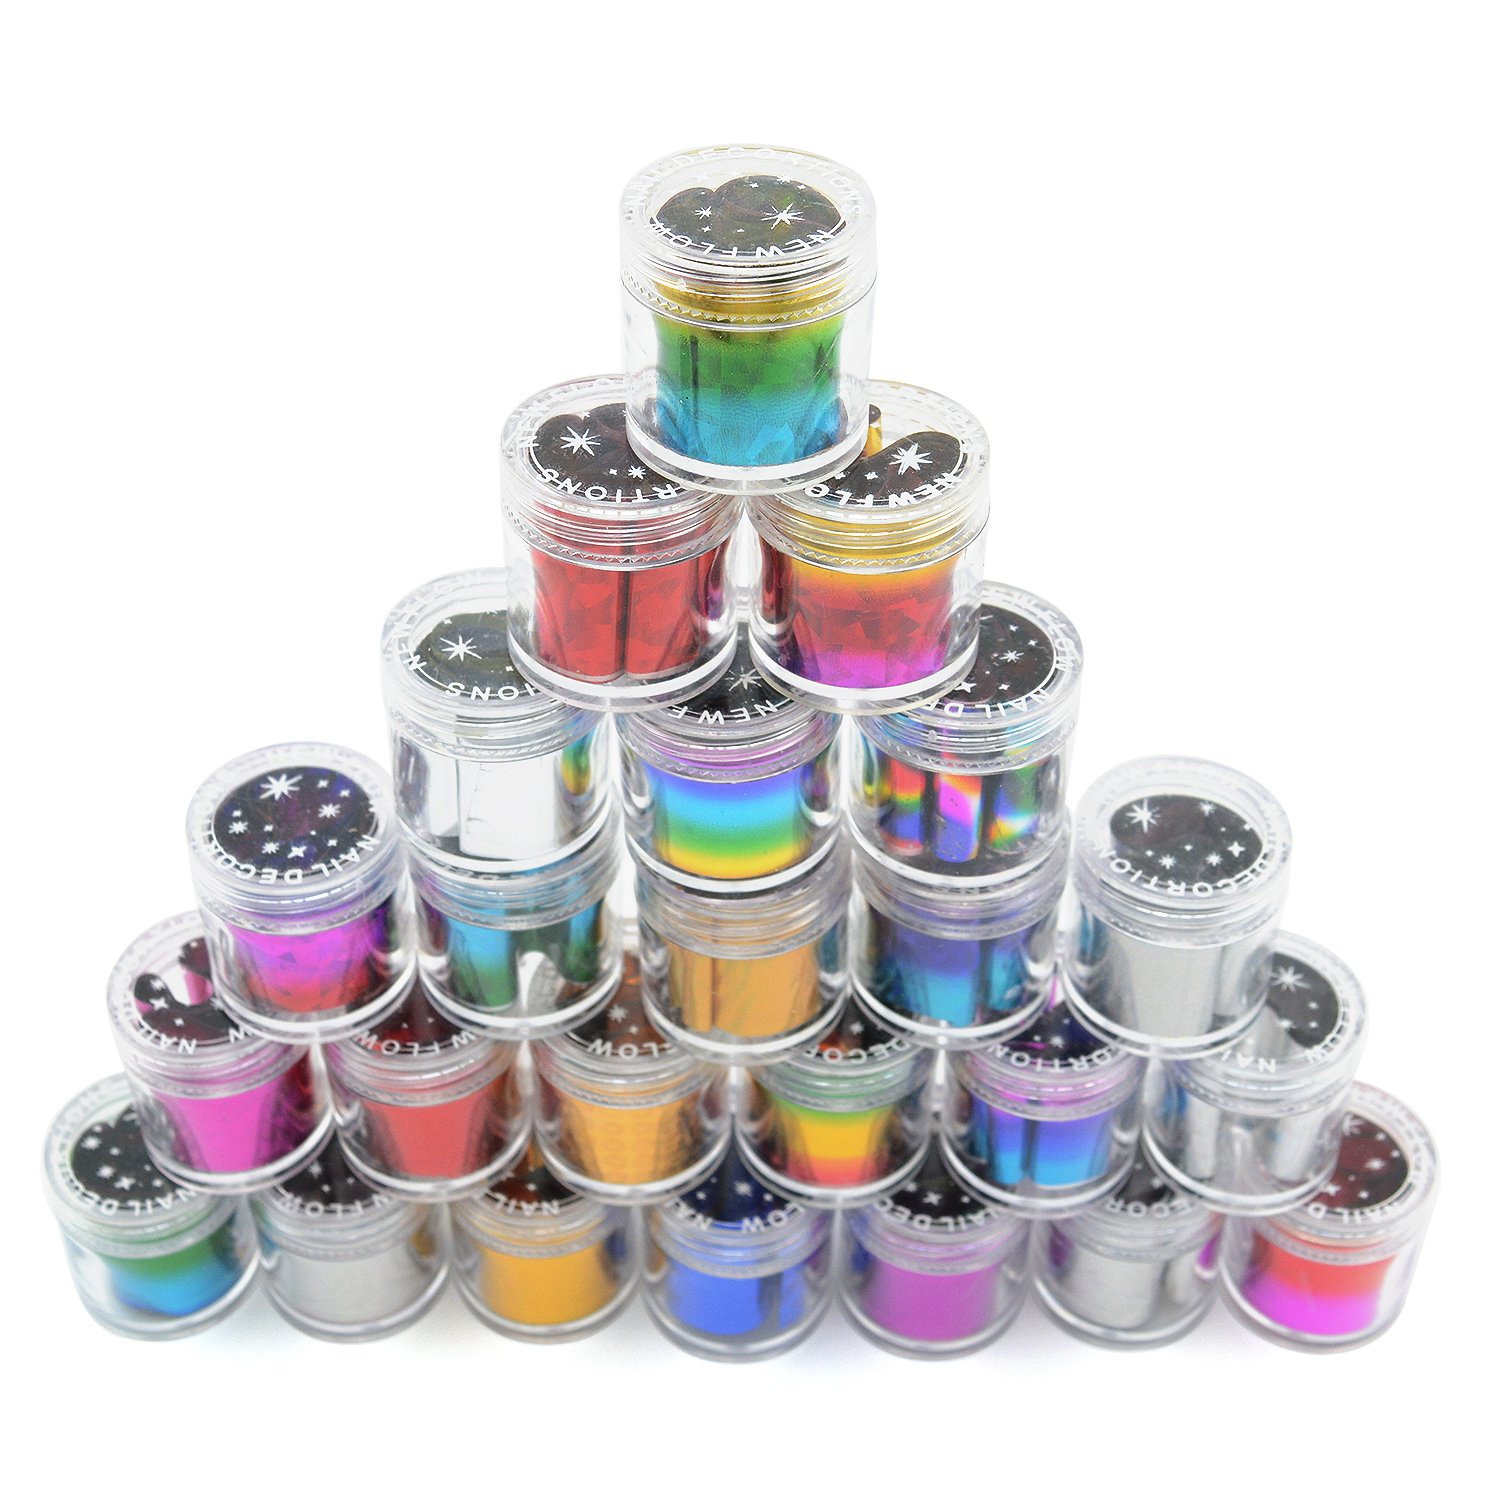 iNewcow Starry Sky Stars Nail Art Stickers Tips Wraps Foil Transfer Adhesive Glitters Acrylic DIY Decoration (24PCS 24Colors) by iNewcow